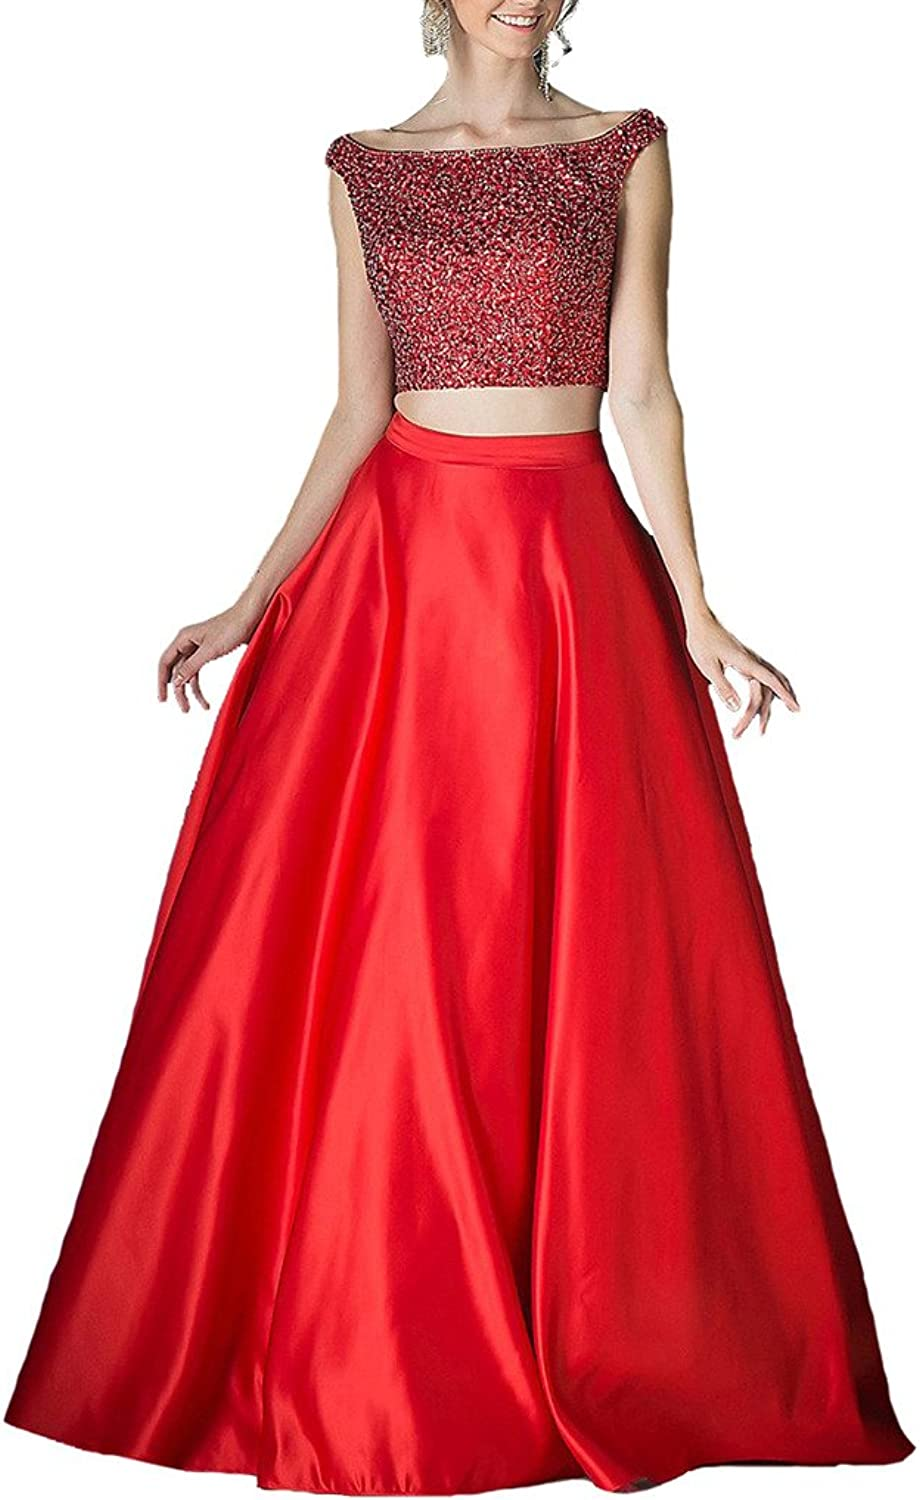 Dearta Women's ALine Two Pieces Long Cap Prom Party Homecoming Dresses